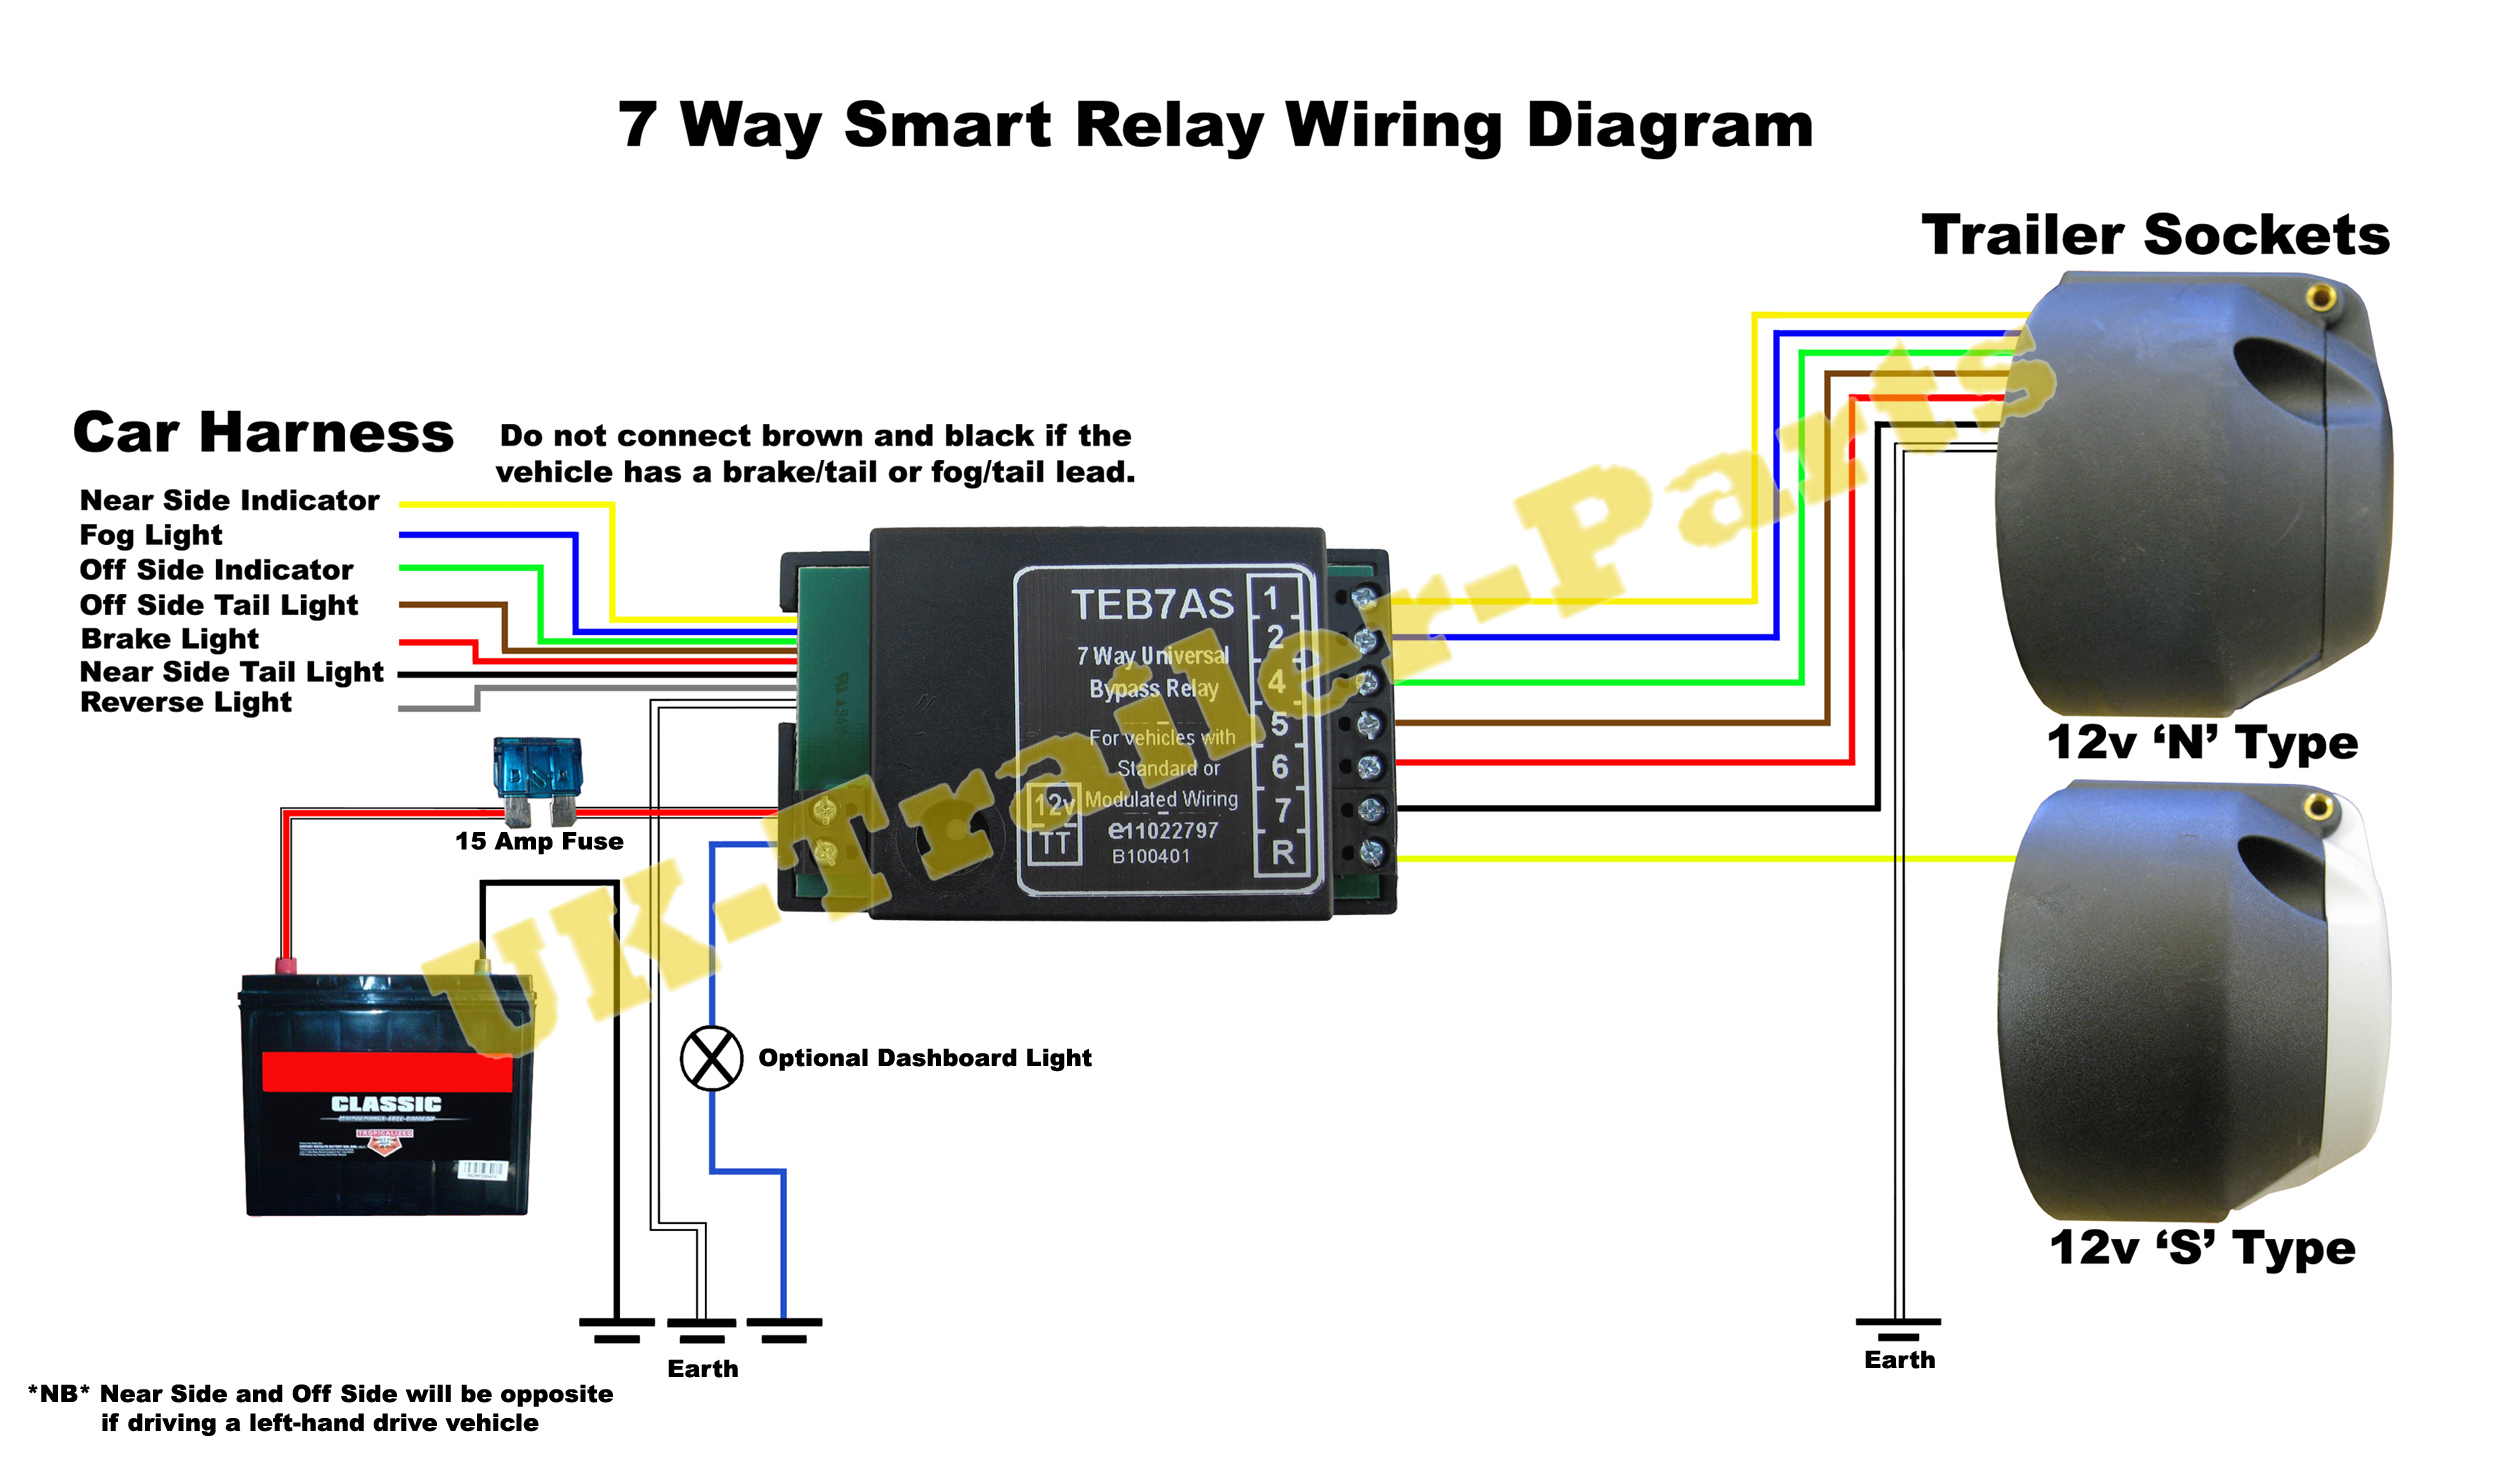 smart relay wiring diagram2 7 way universal bypass relay wiring diagram uk trailer parts peugeot 307 towbar wiring diagram at alyssarenee.co